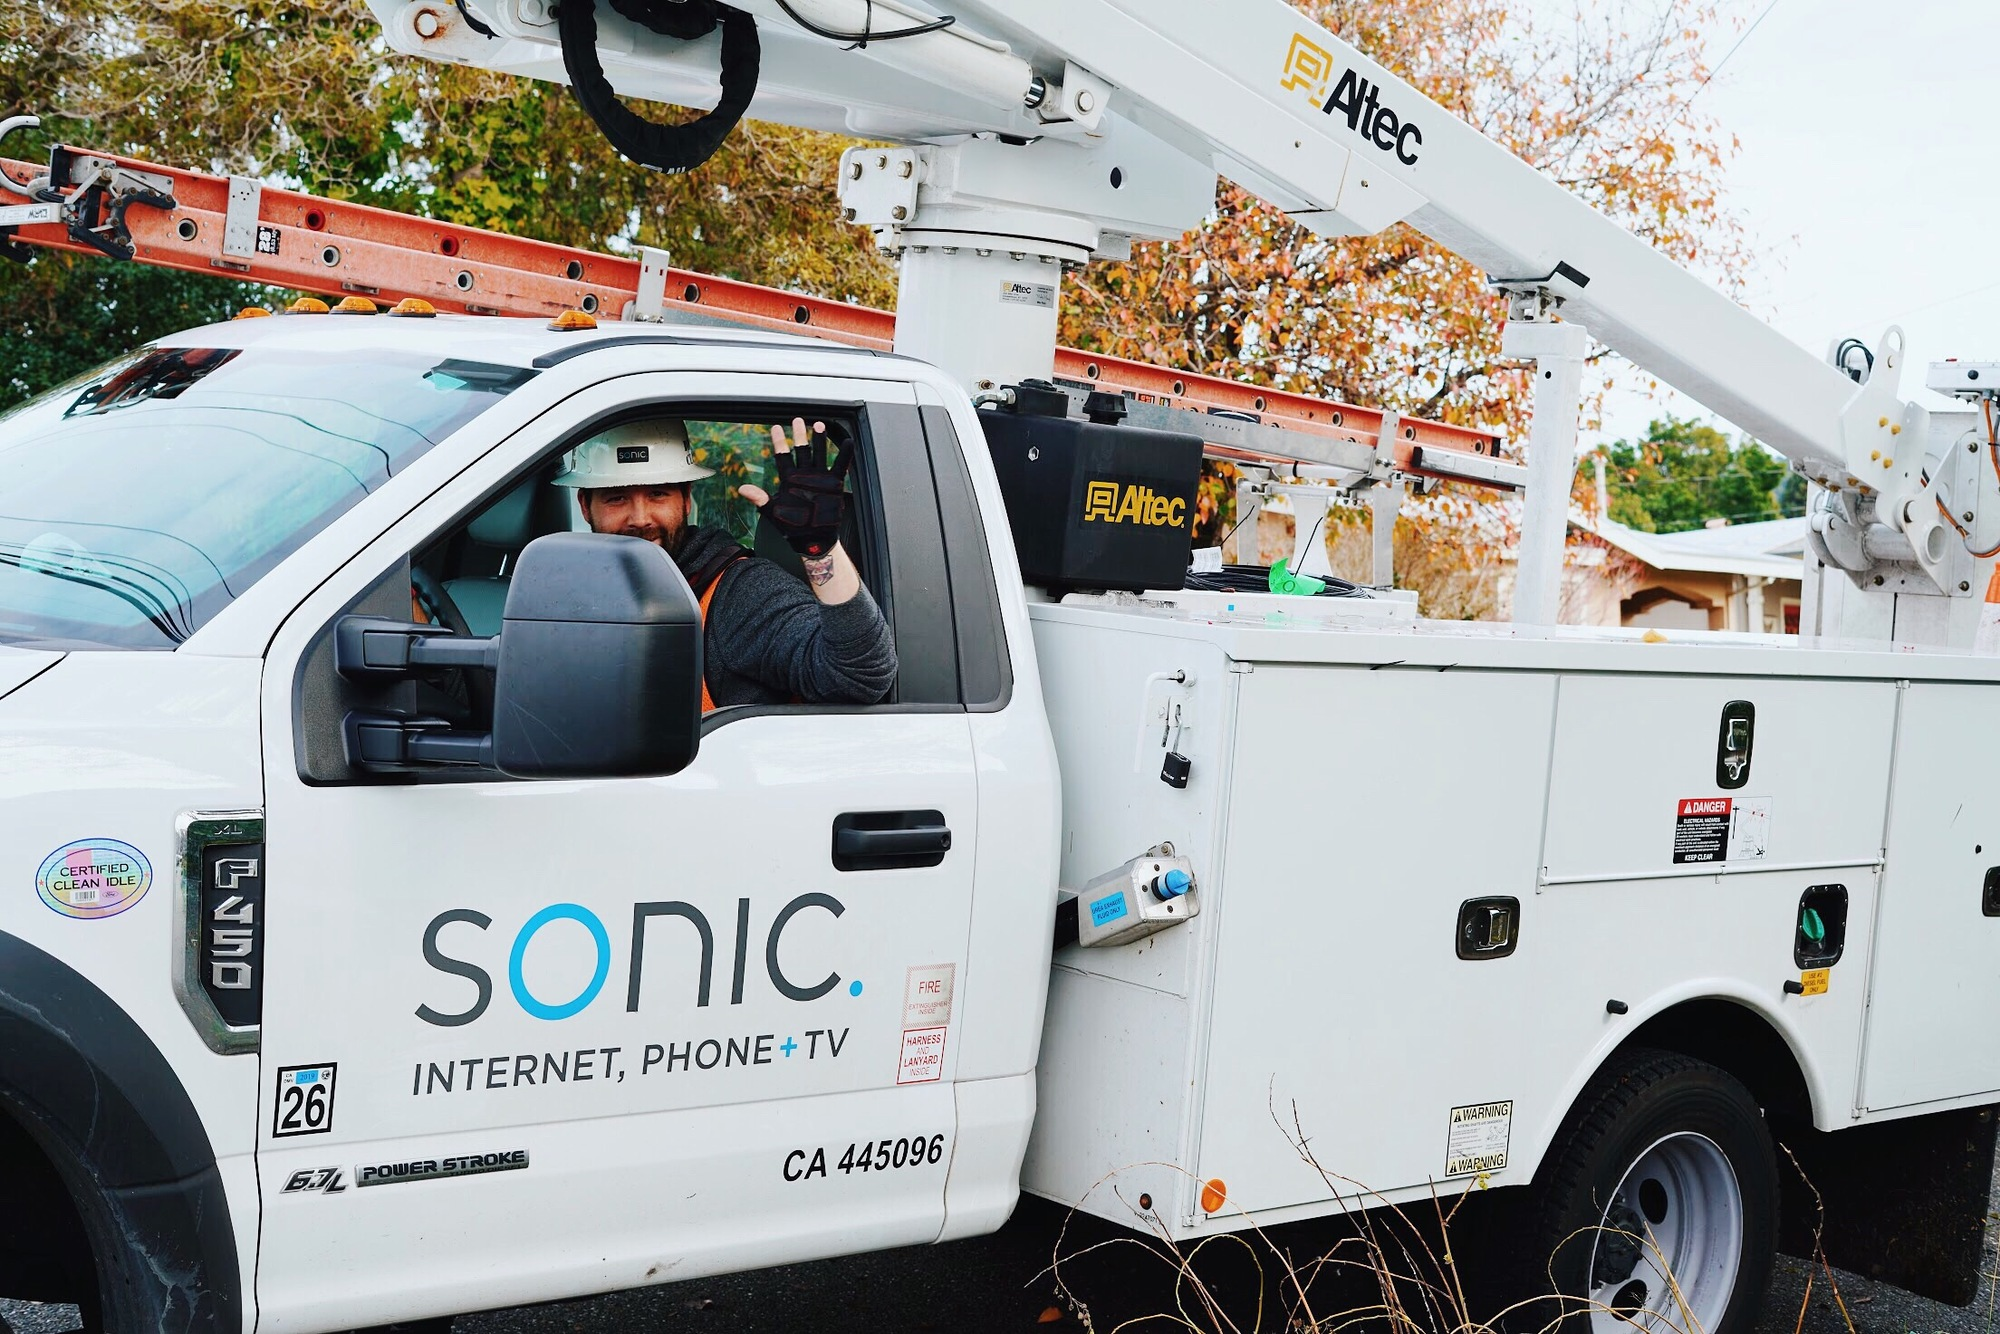 Bay Area: When it comes to your internet, you have a choice